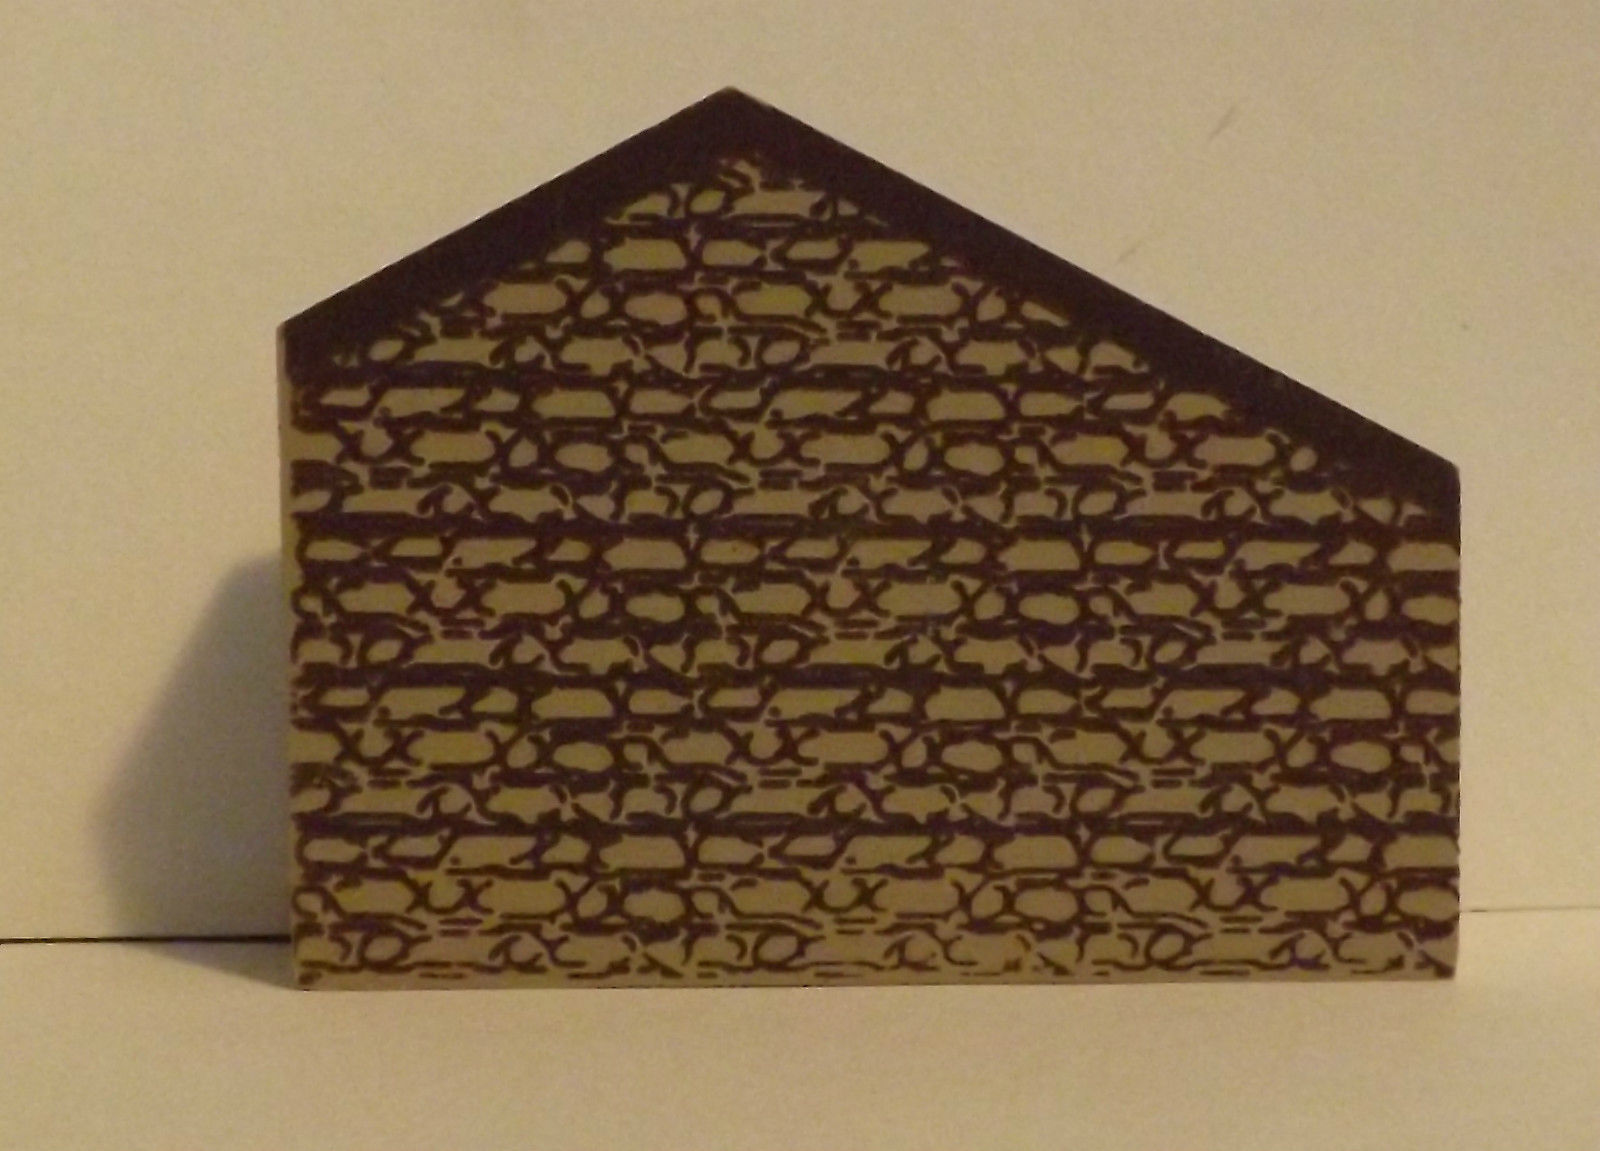 Cats Meow Accessory Building Double Sided image 2